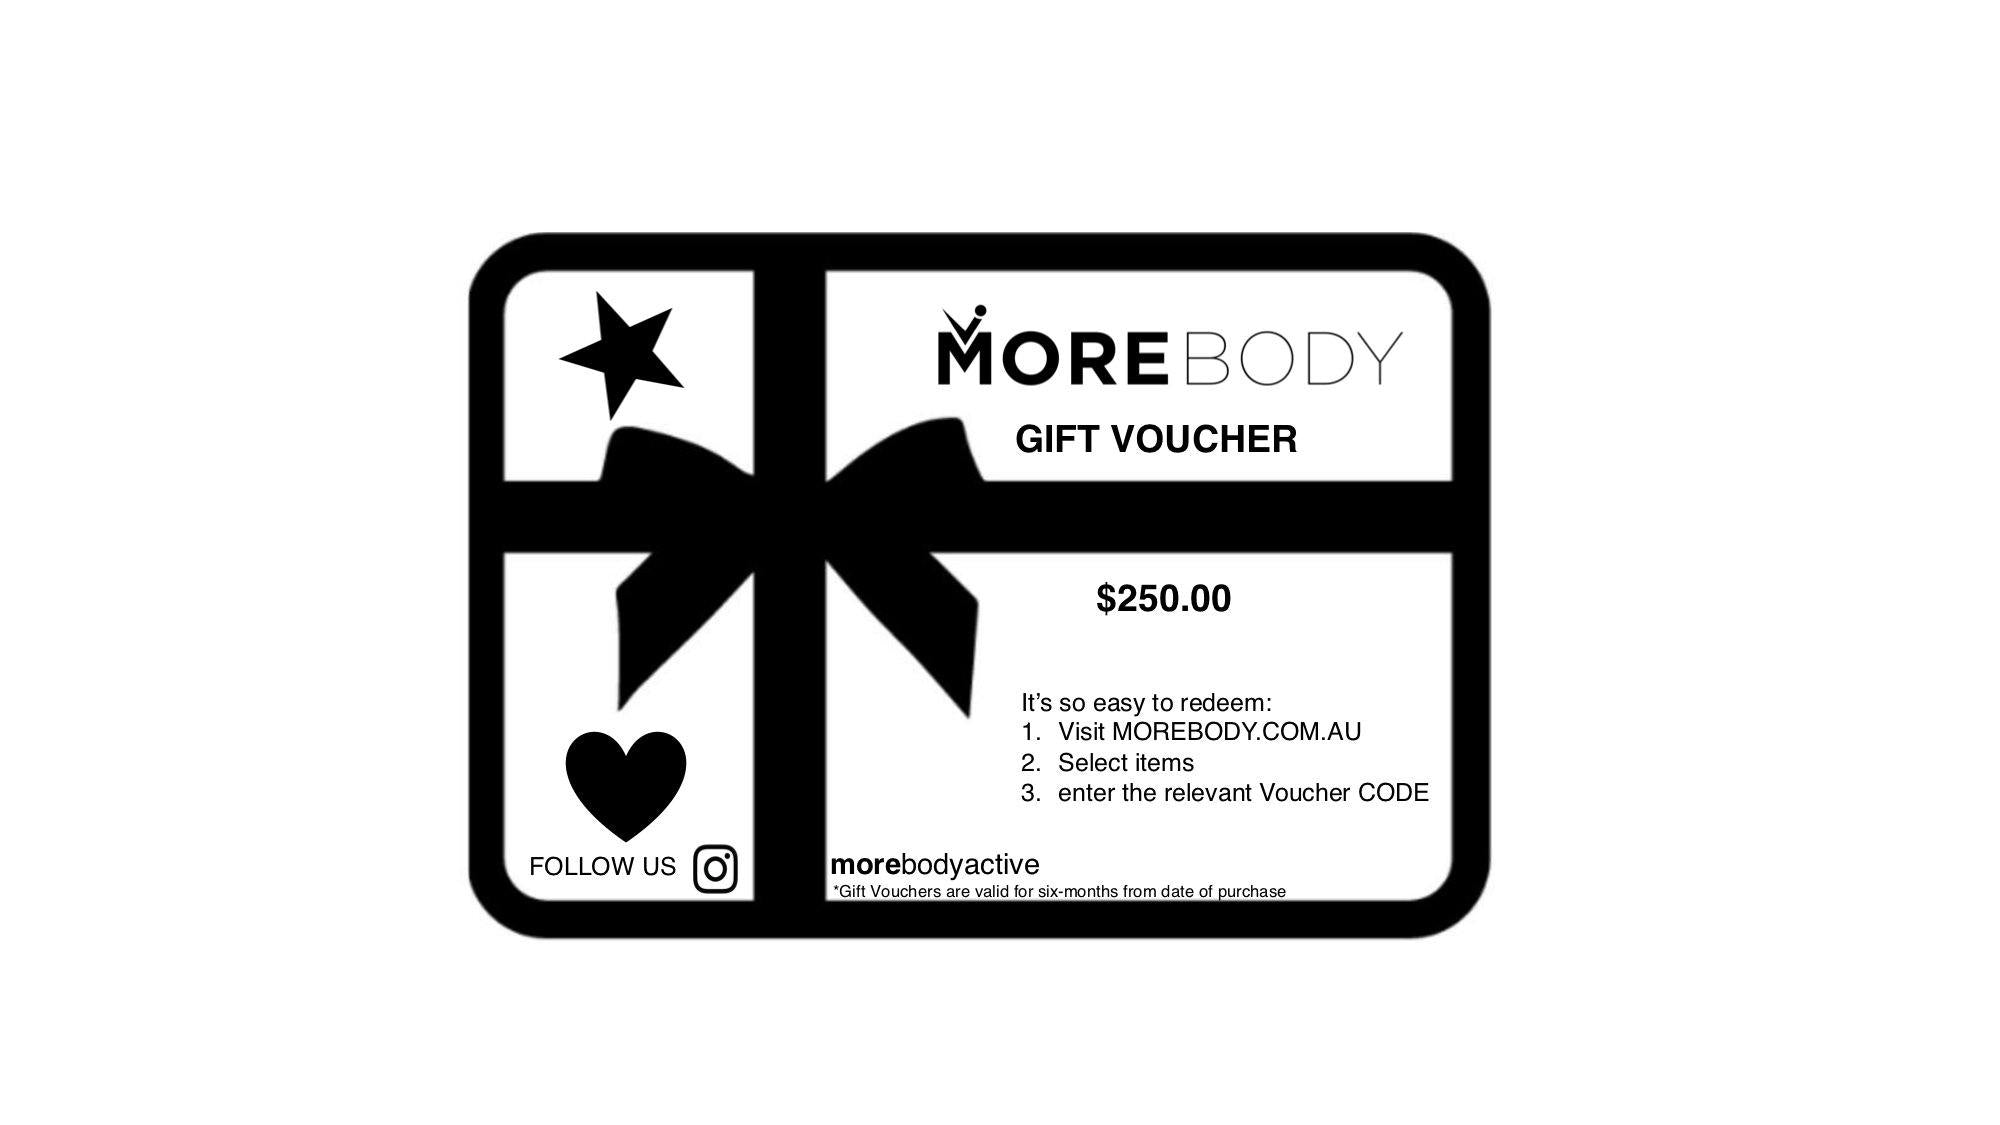 Gift Voucher $250.00 - More Body